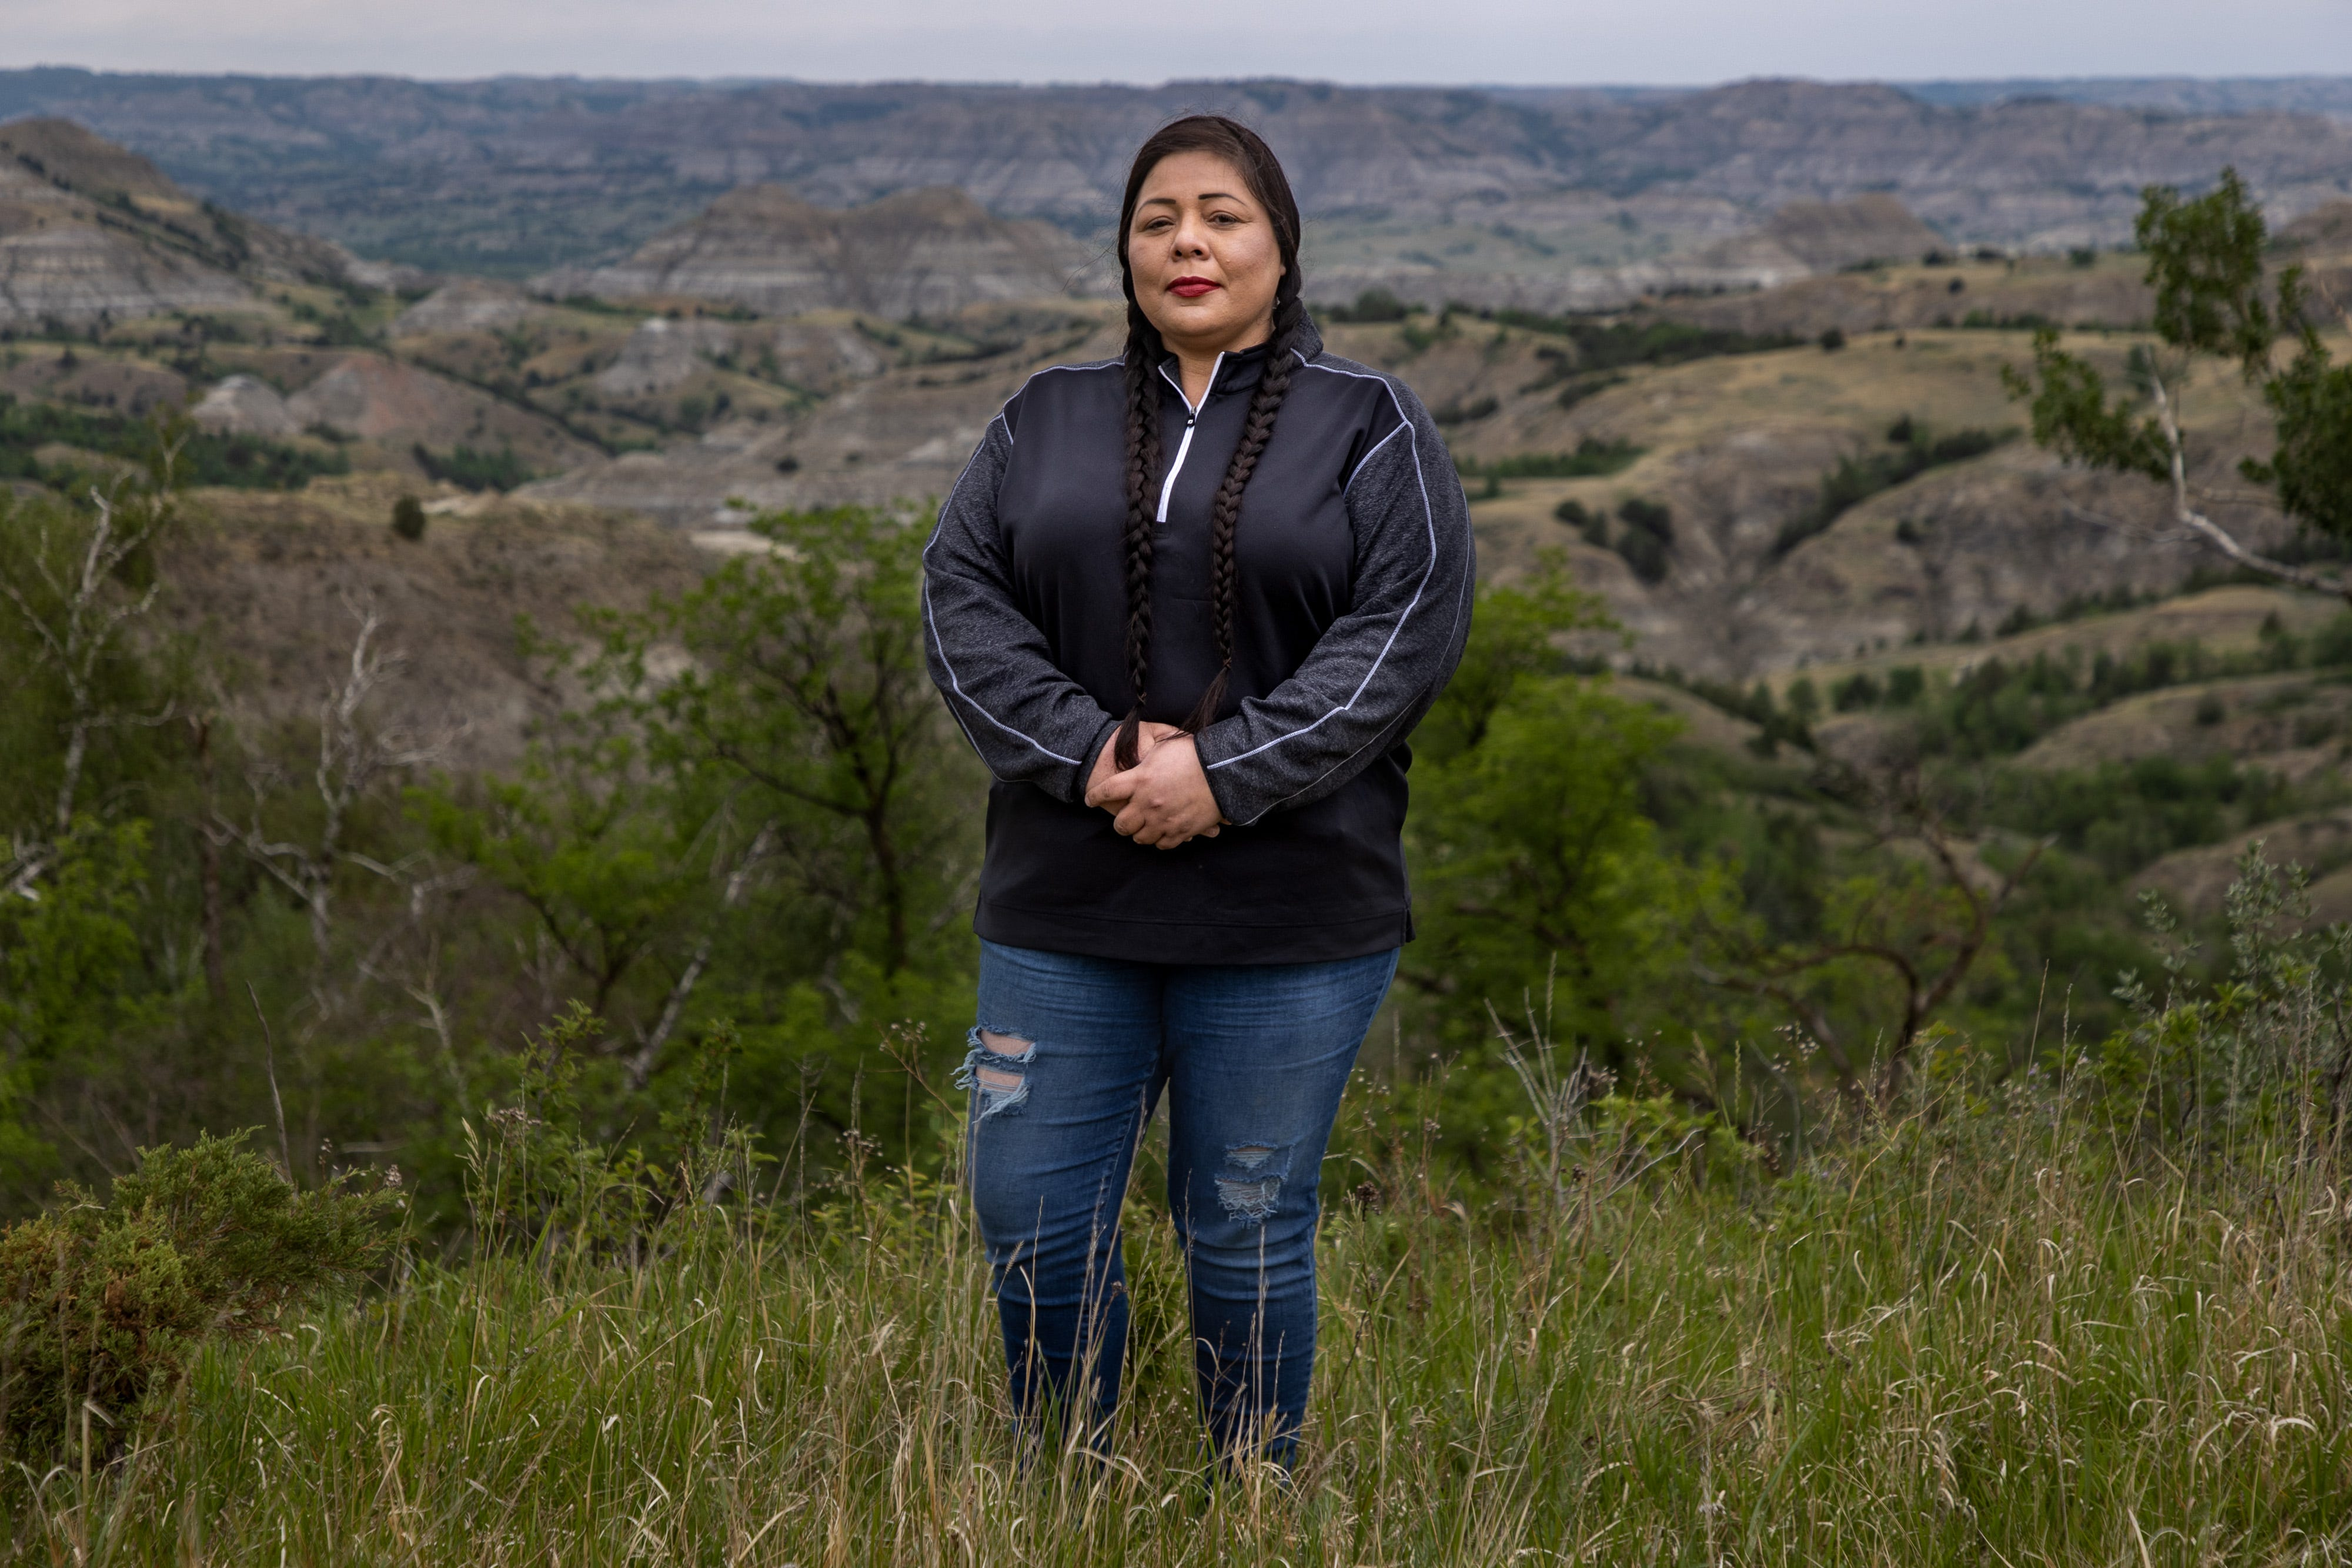 MHA Drug Enforcement special agent Dawn White stands in front of one of her favorite parts of North Dakota, the Badlands area south of the Fort Berthold Reservation. White is an Army veteran who grew up on the reservation and worked as a sergeant for the Tribal Police before joining the specialized drug task force based in Parshall, N.D.